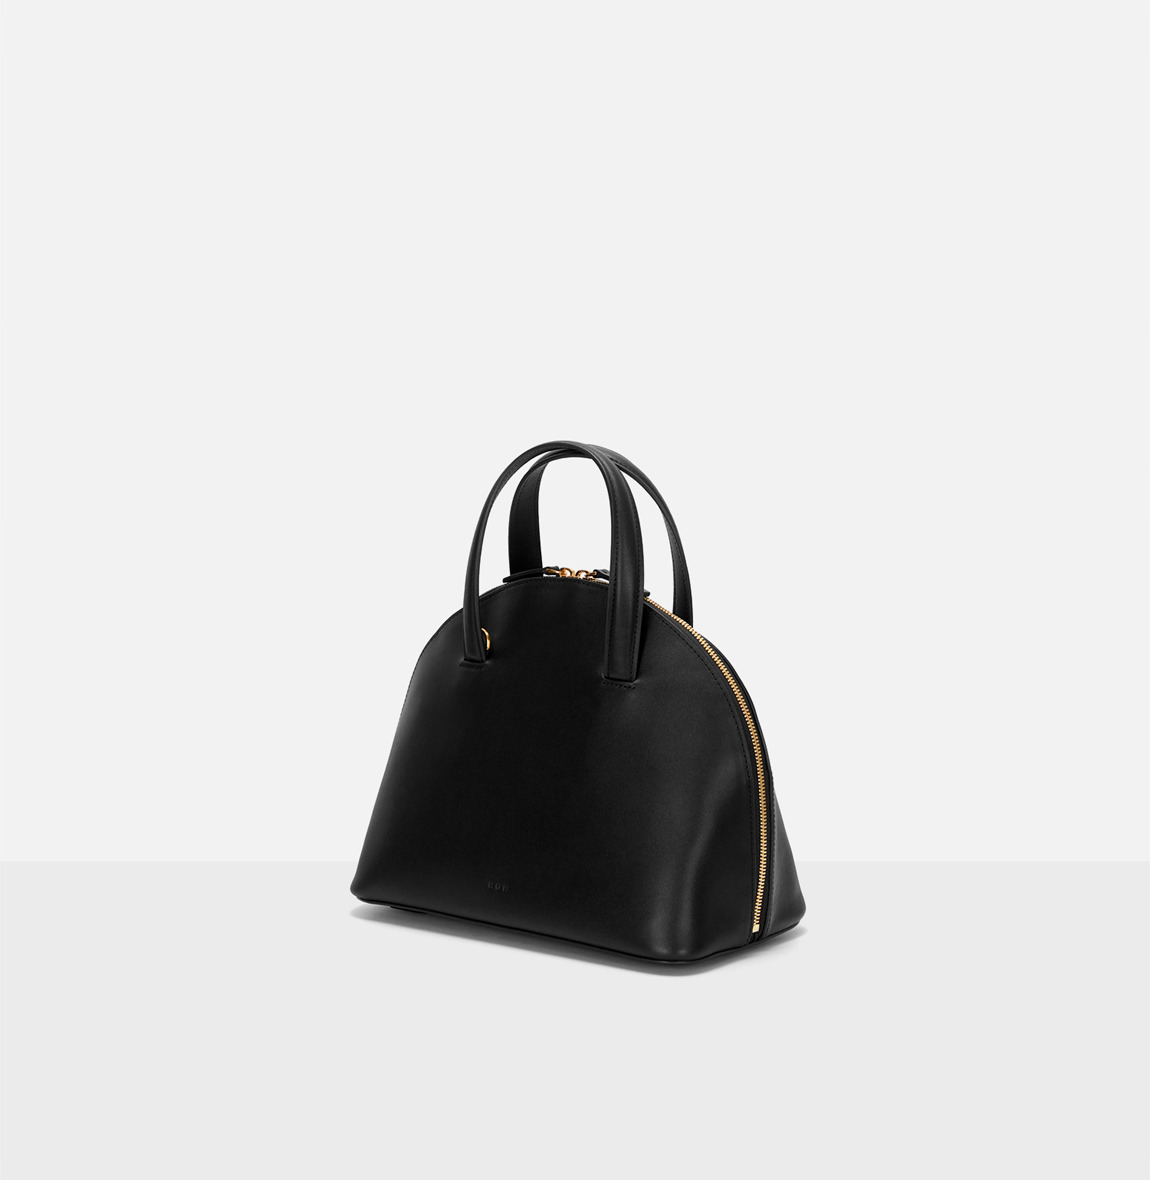 [19FW NEW] Cloche medium tote bag Black